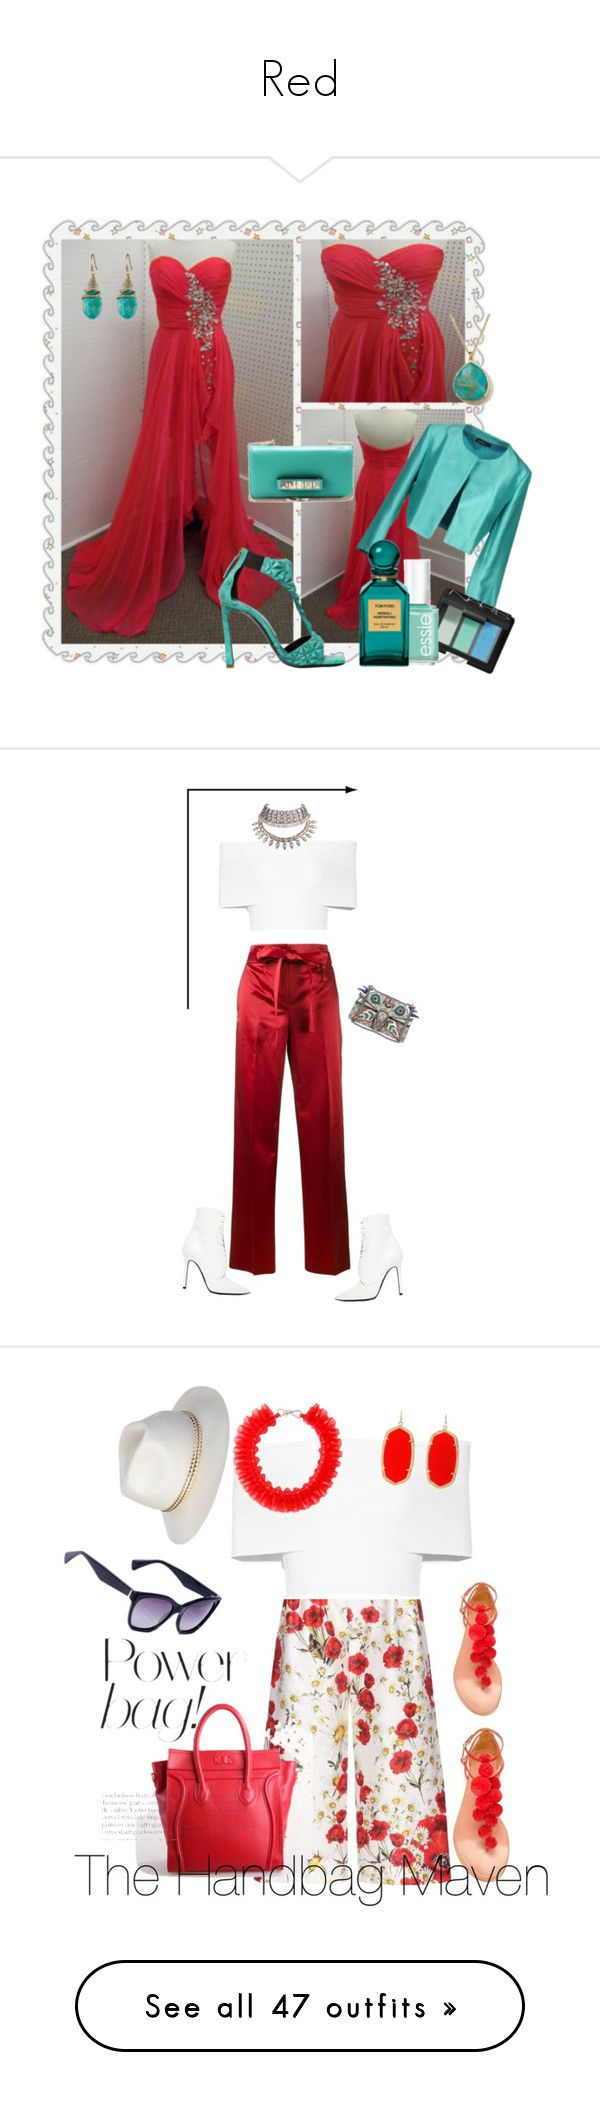 """""""Red"""" by yelena-yeong ❤ liked on Polyvore featuring Alexis Bittar, Ippolita, Valentino, Gianmarco Lorenzi, Antonelli, NARS Cosmetics, Essie, Tom Ford, Helmut Lang and Gucci"""